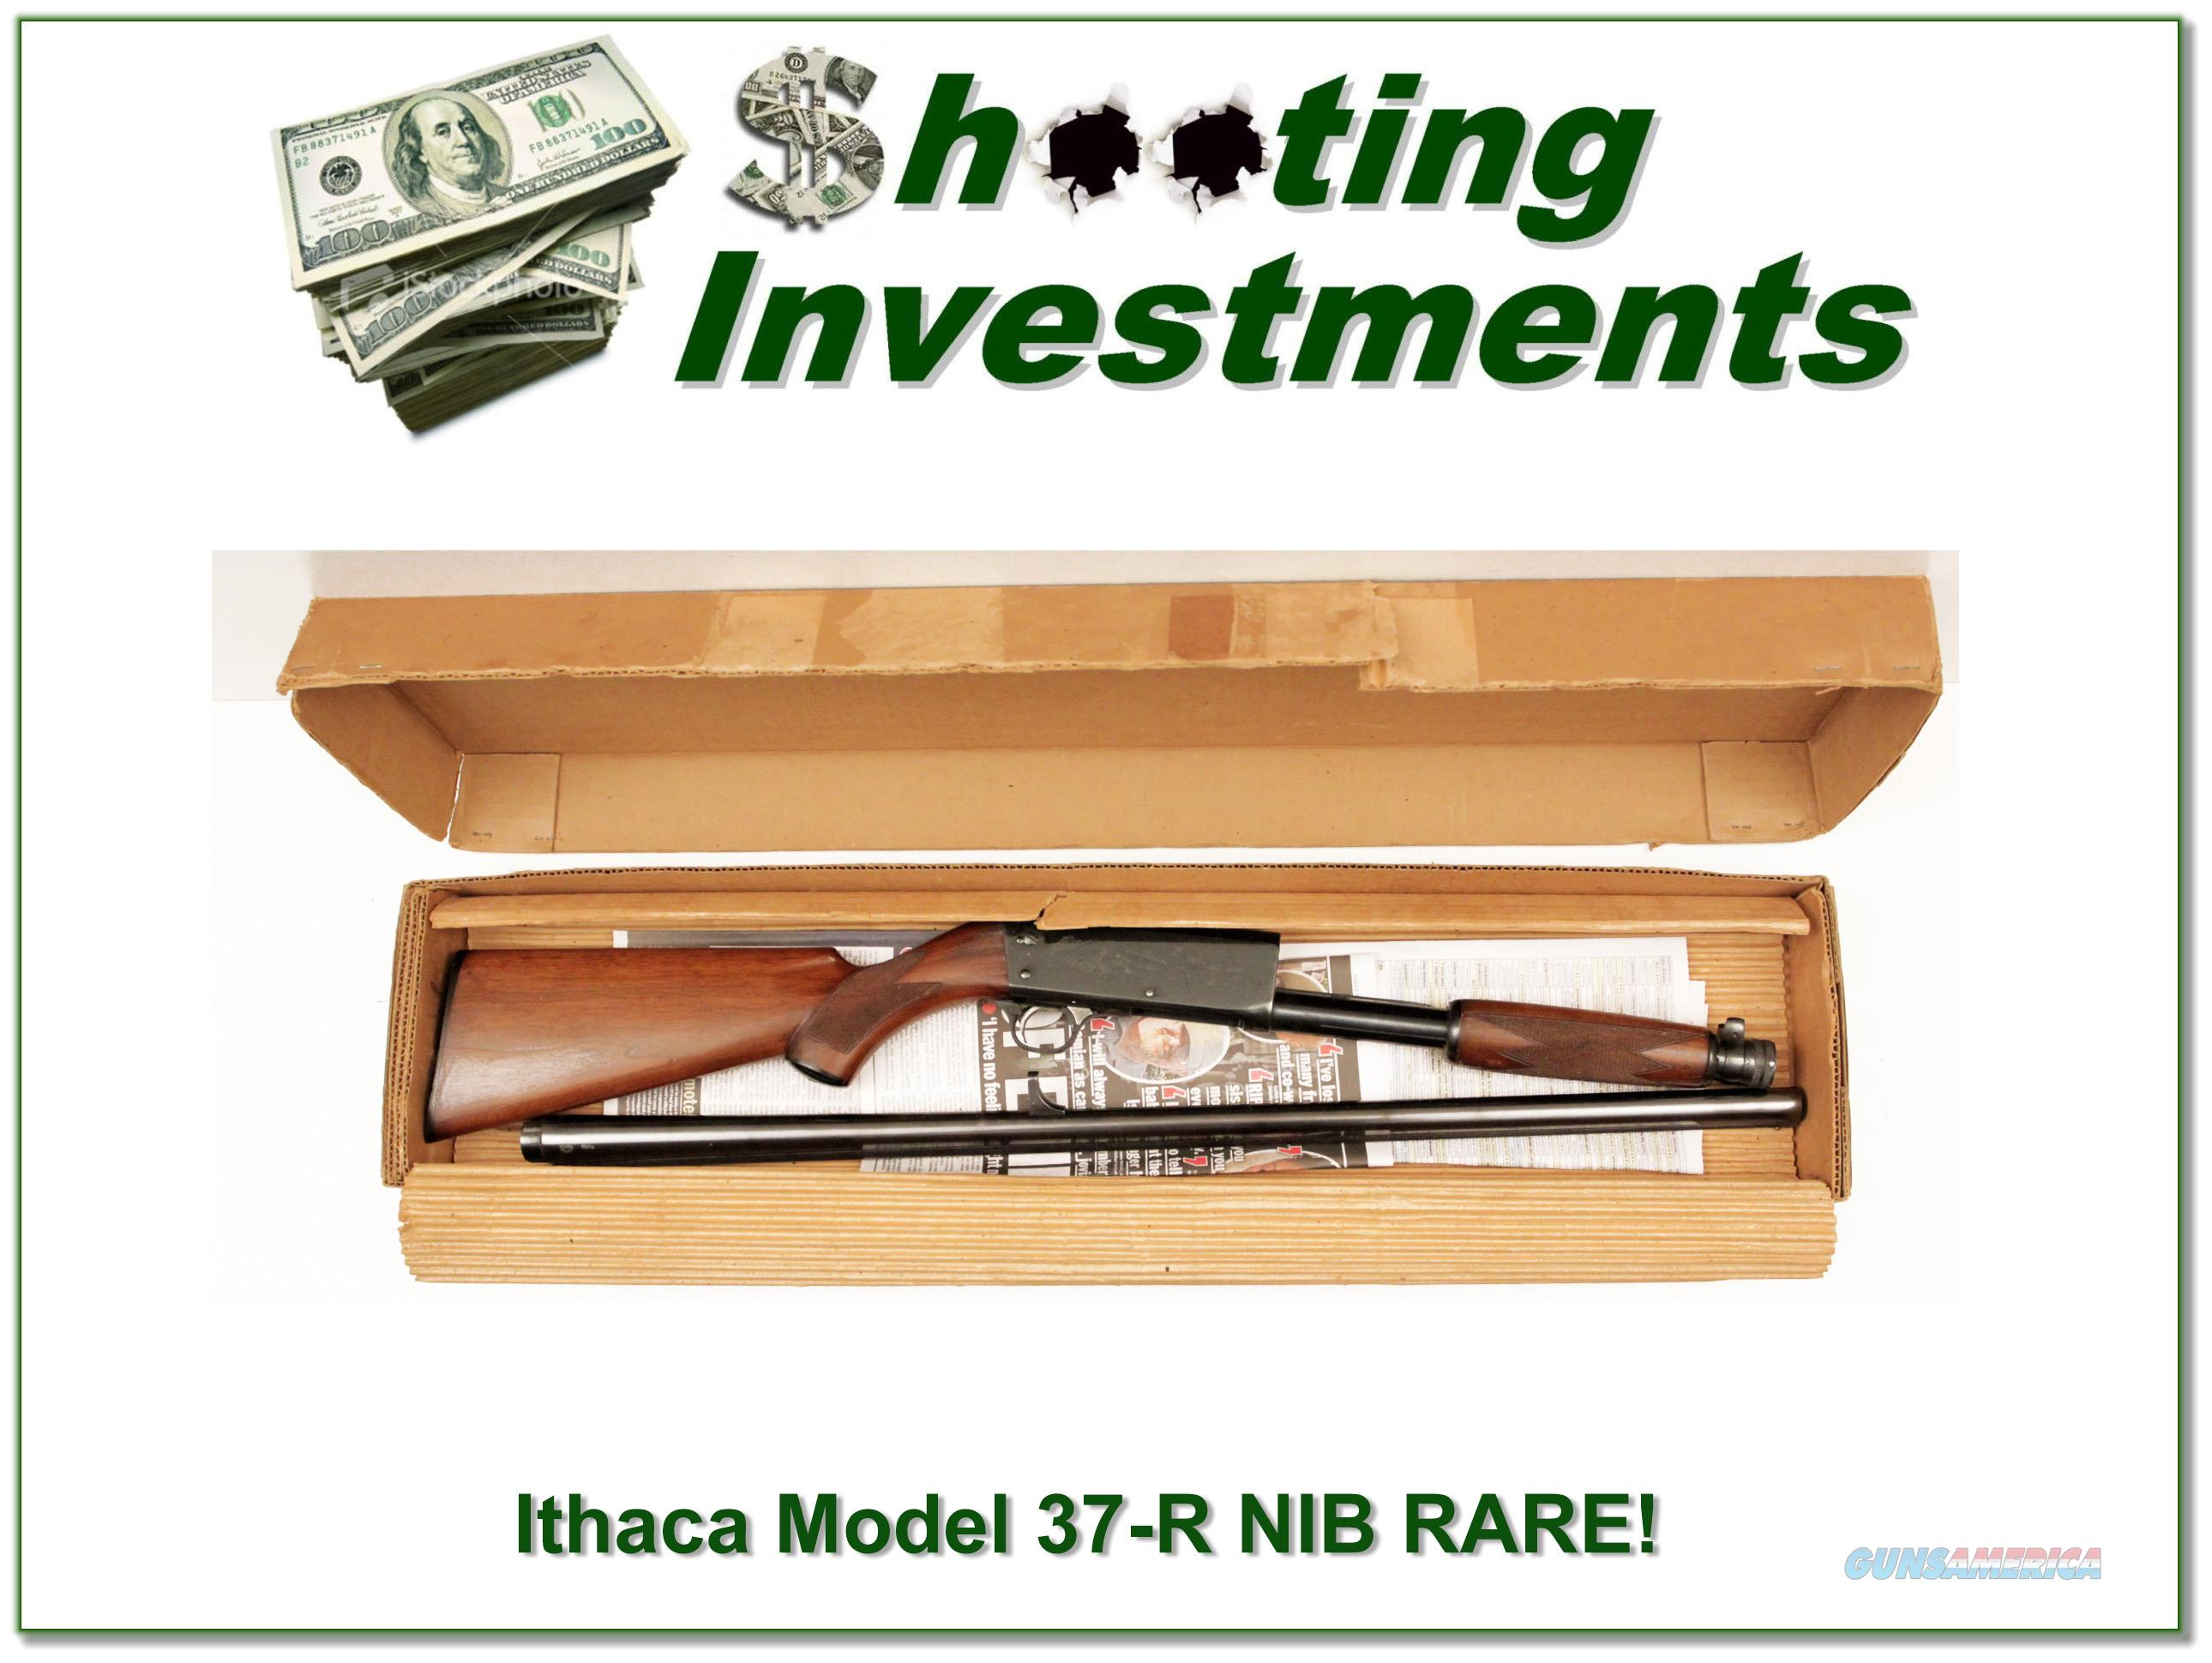 Ithaca Model 37-R 12 Gauge NIB Unfired Pre War RARE!  Guns > Shotguns > Ithaca Shotguns > Pump